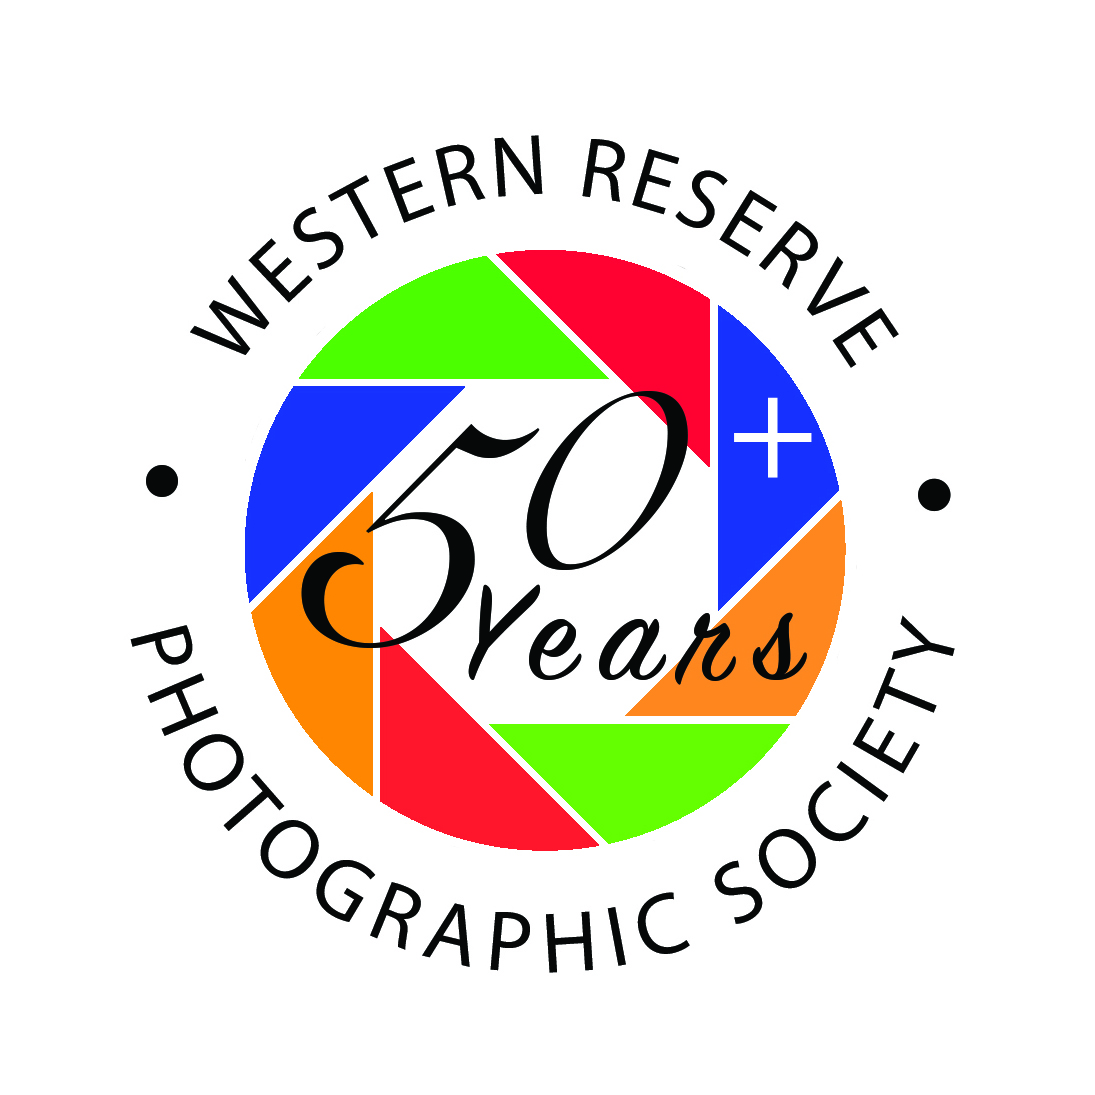 Western Reserve Photographic Society